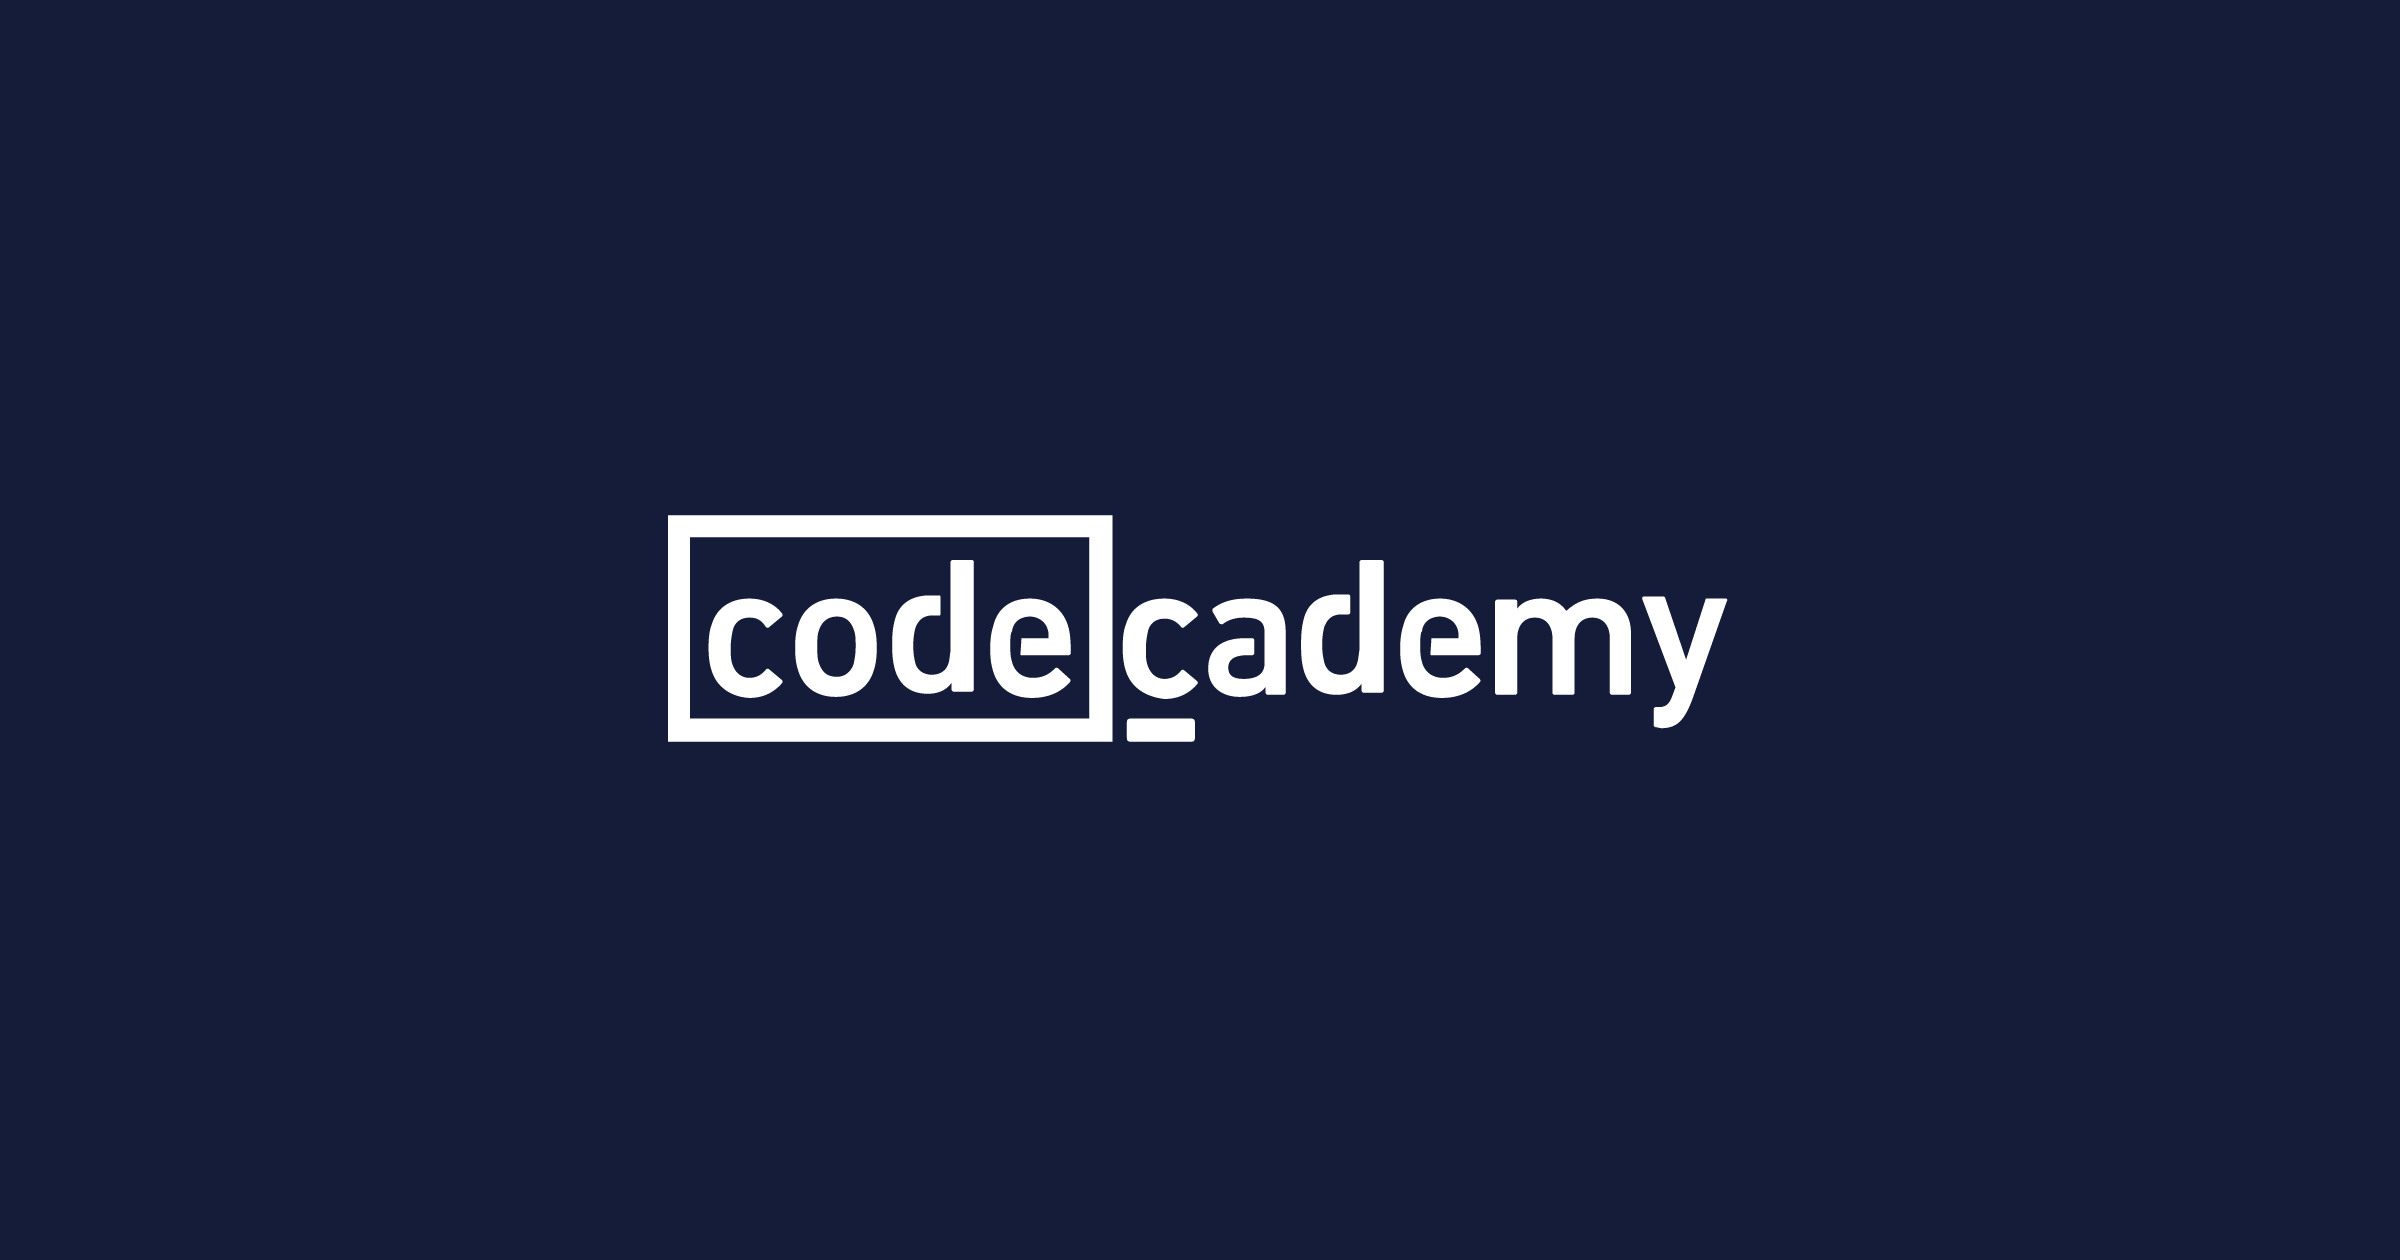 Learn to Code at Codecademy